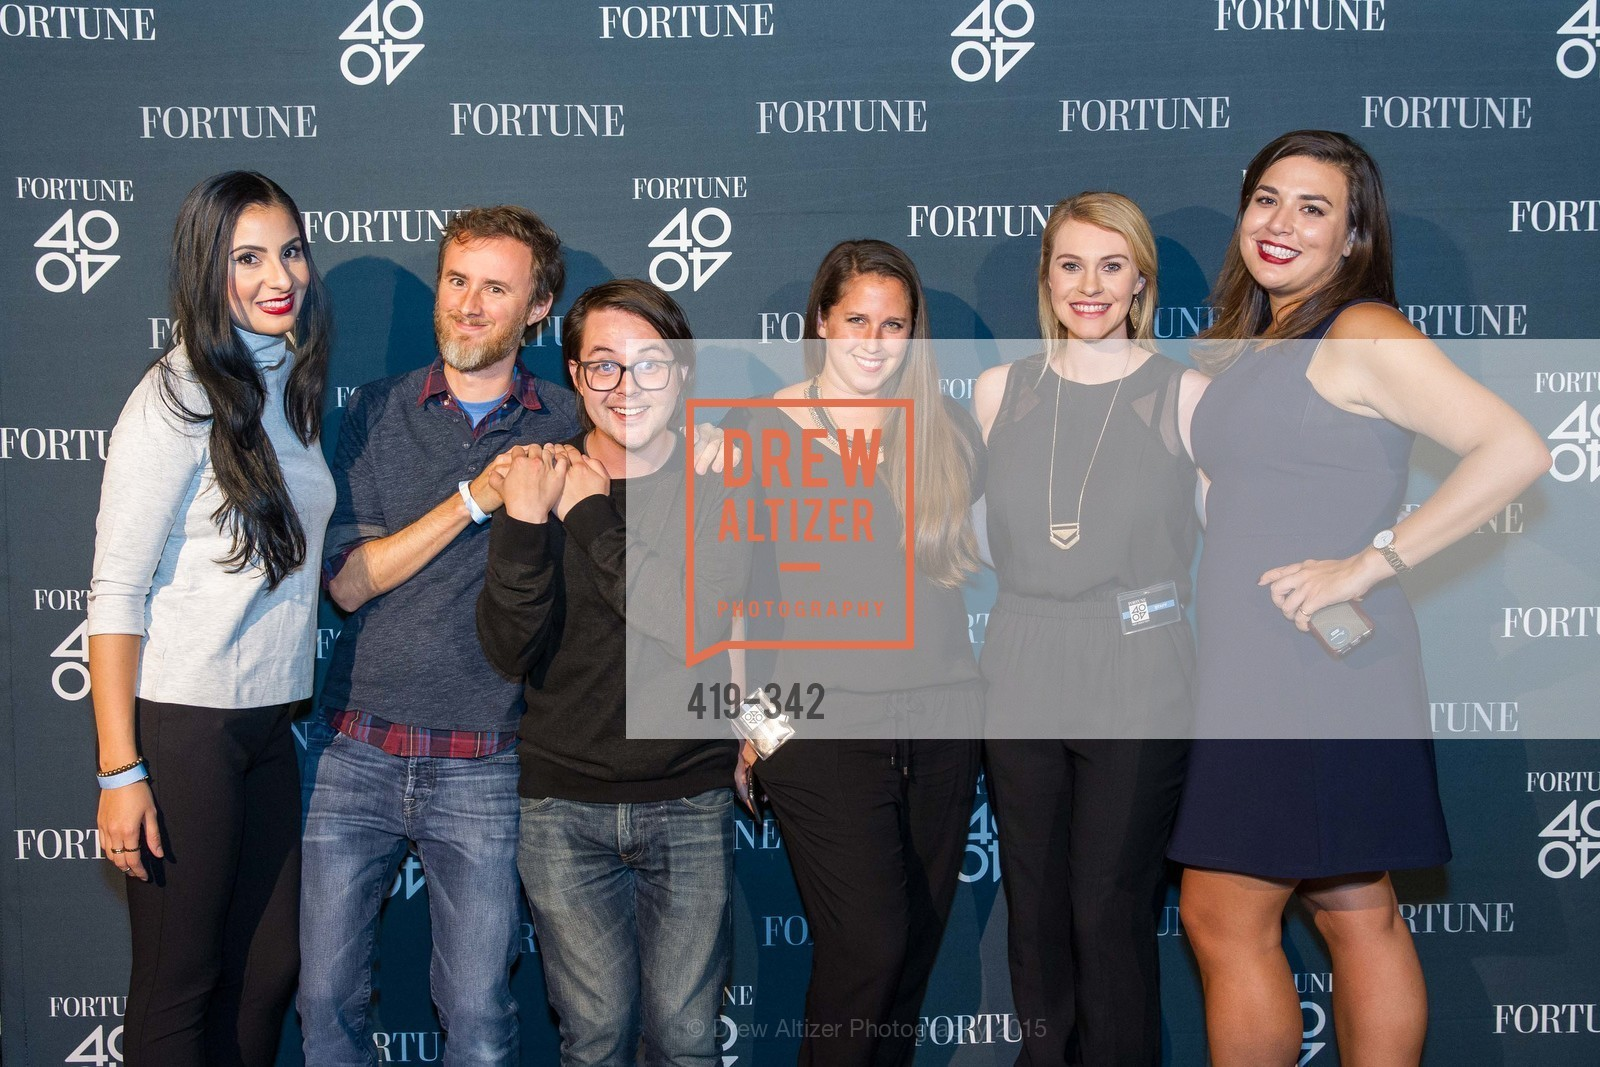 Daniela Quintanilla, Corey Johnson, Pat Nakajima, Alaine Newland, Katelyn Bryant, Kate Guarente, Fortune's 40 Under 40 Party, GitHub HQ. 88 Colin P Kelly Jr St, October 7th, 2015,Drew Altizer, Drew Altizer Photography, full-service event agency, private events, San Francisco photographer, photographer California